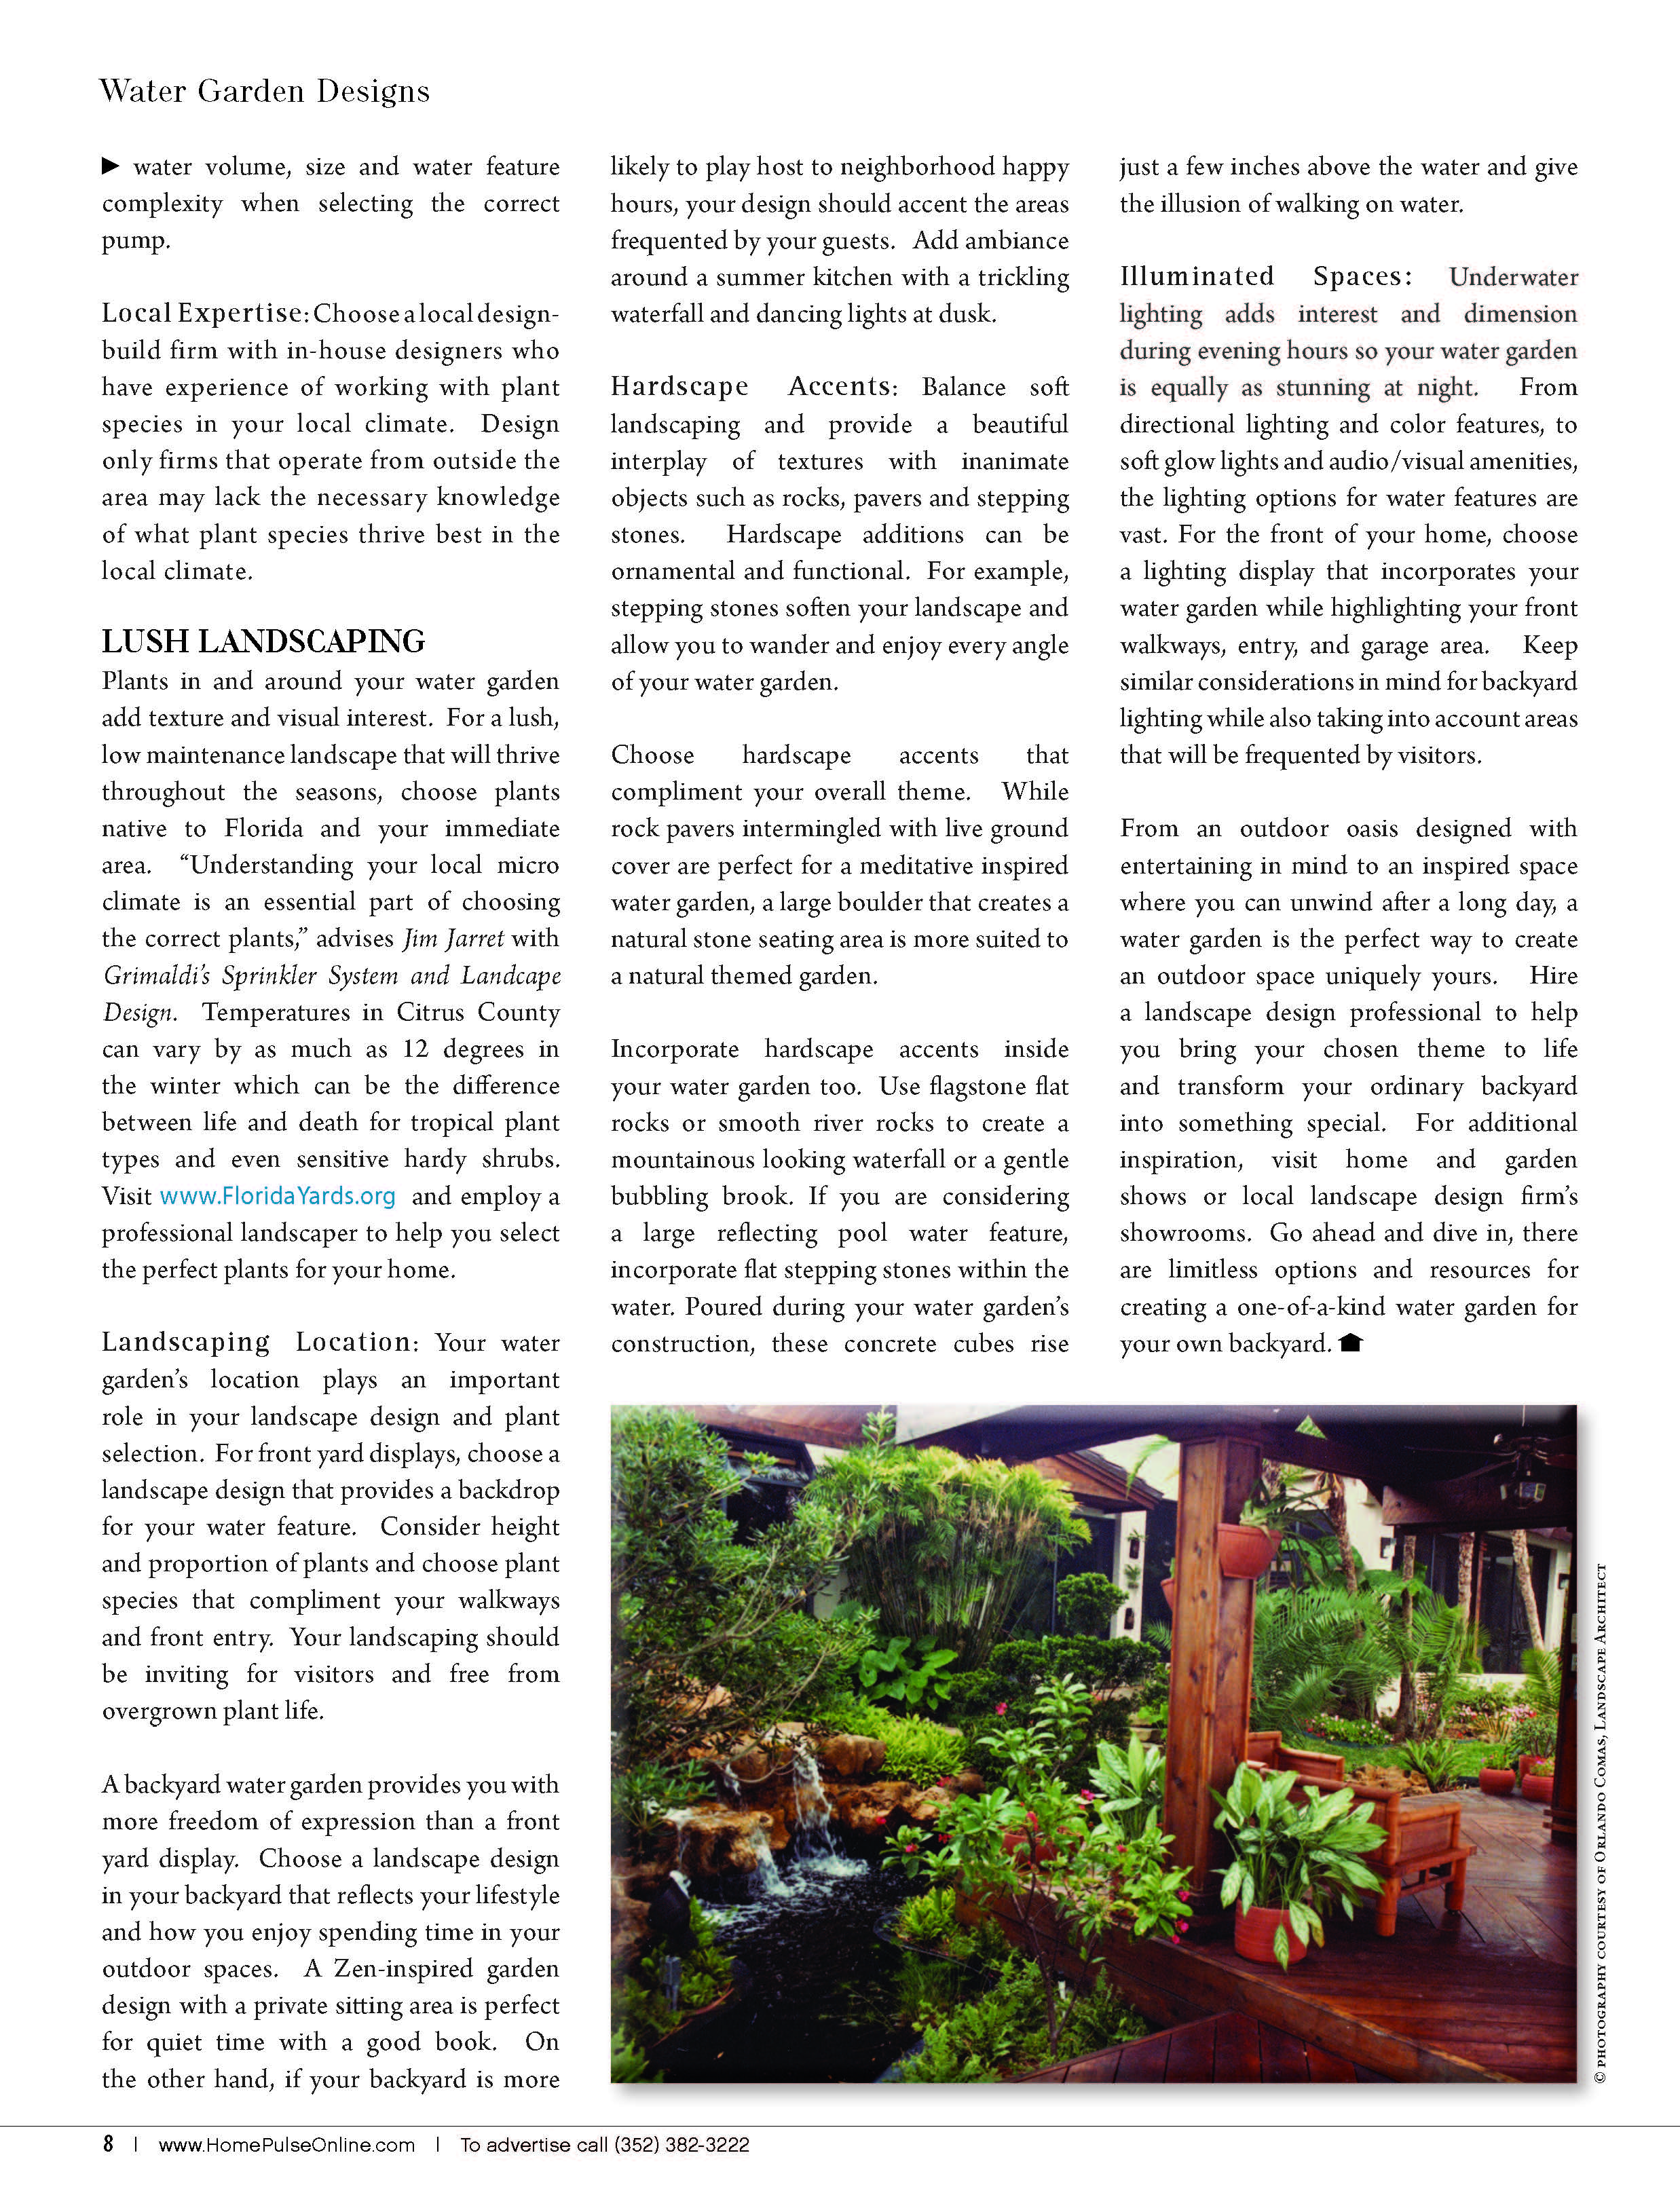 Home Pulse 2011 revised_Page_3